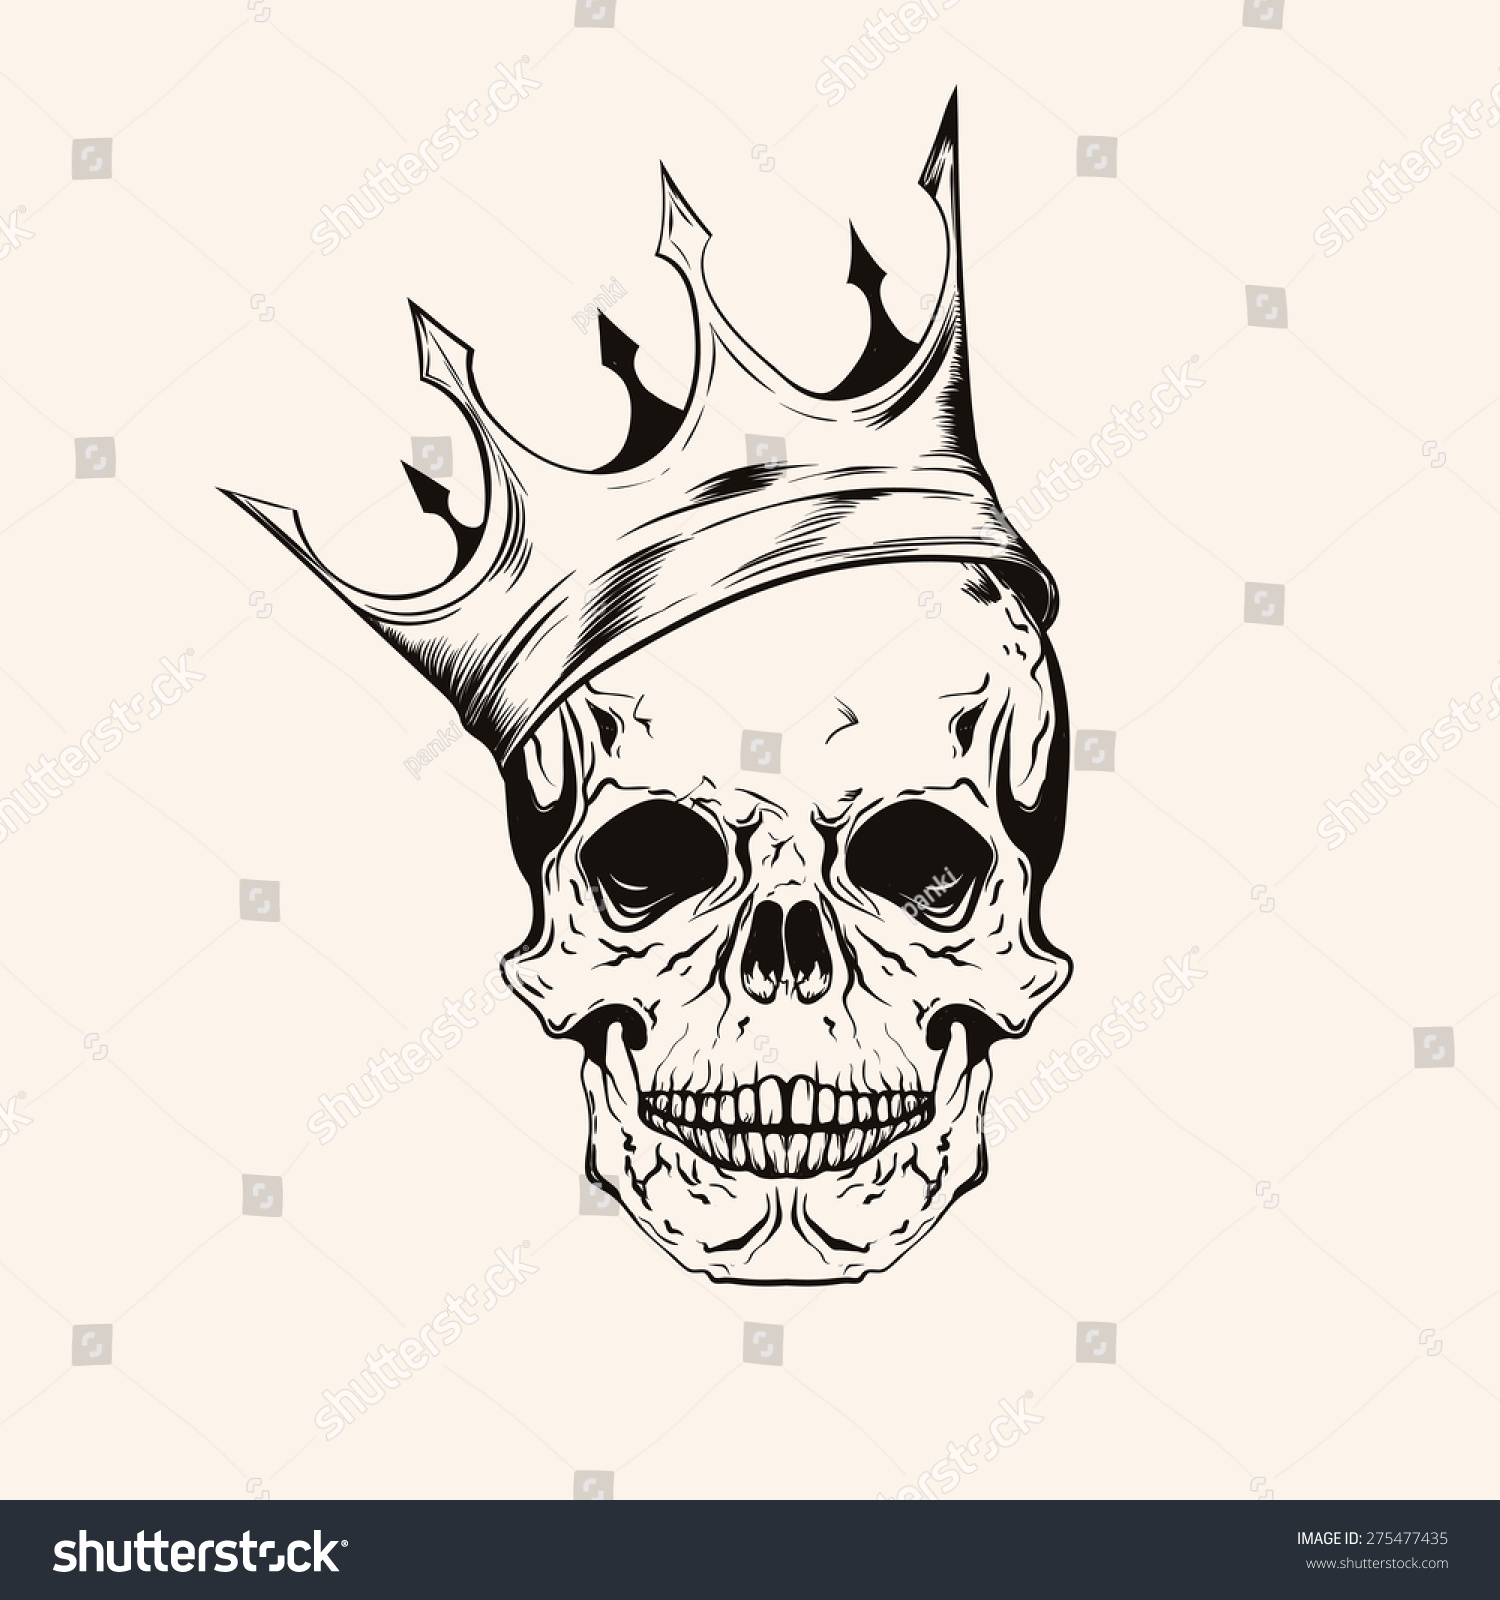 Skull Line Drawing Tattoo : Hand drawn sketch skull crown tattoo stock vector